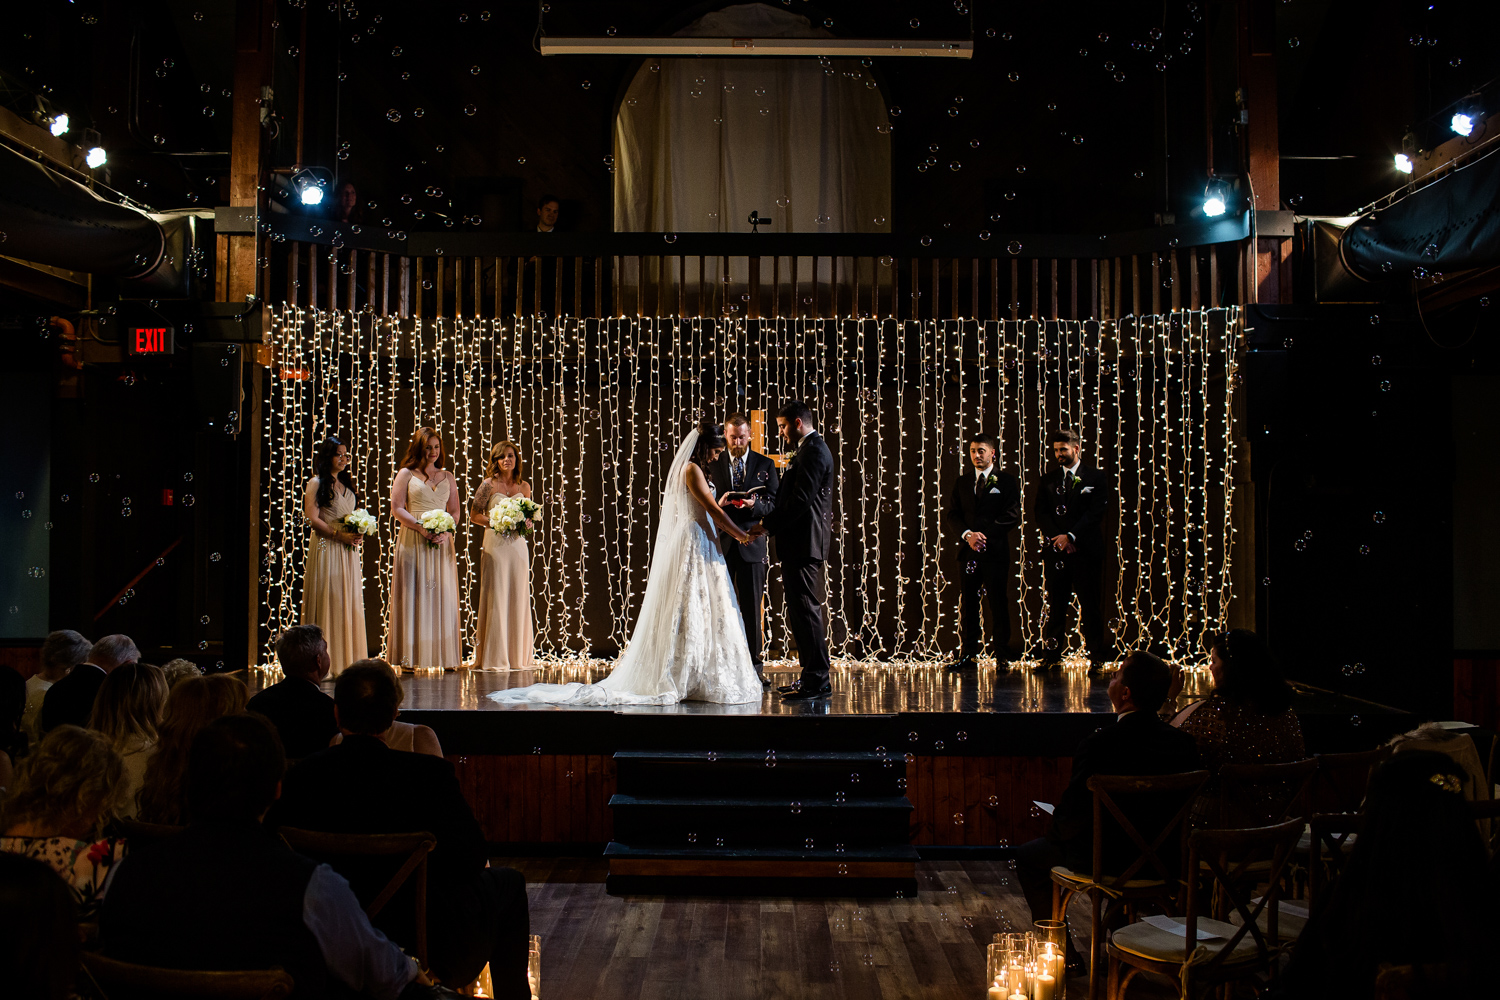 Wedding ceremony with bubbles and string lights